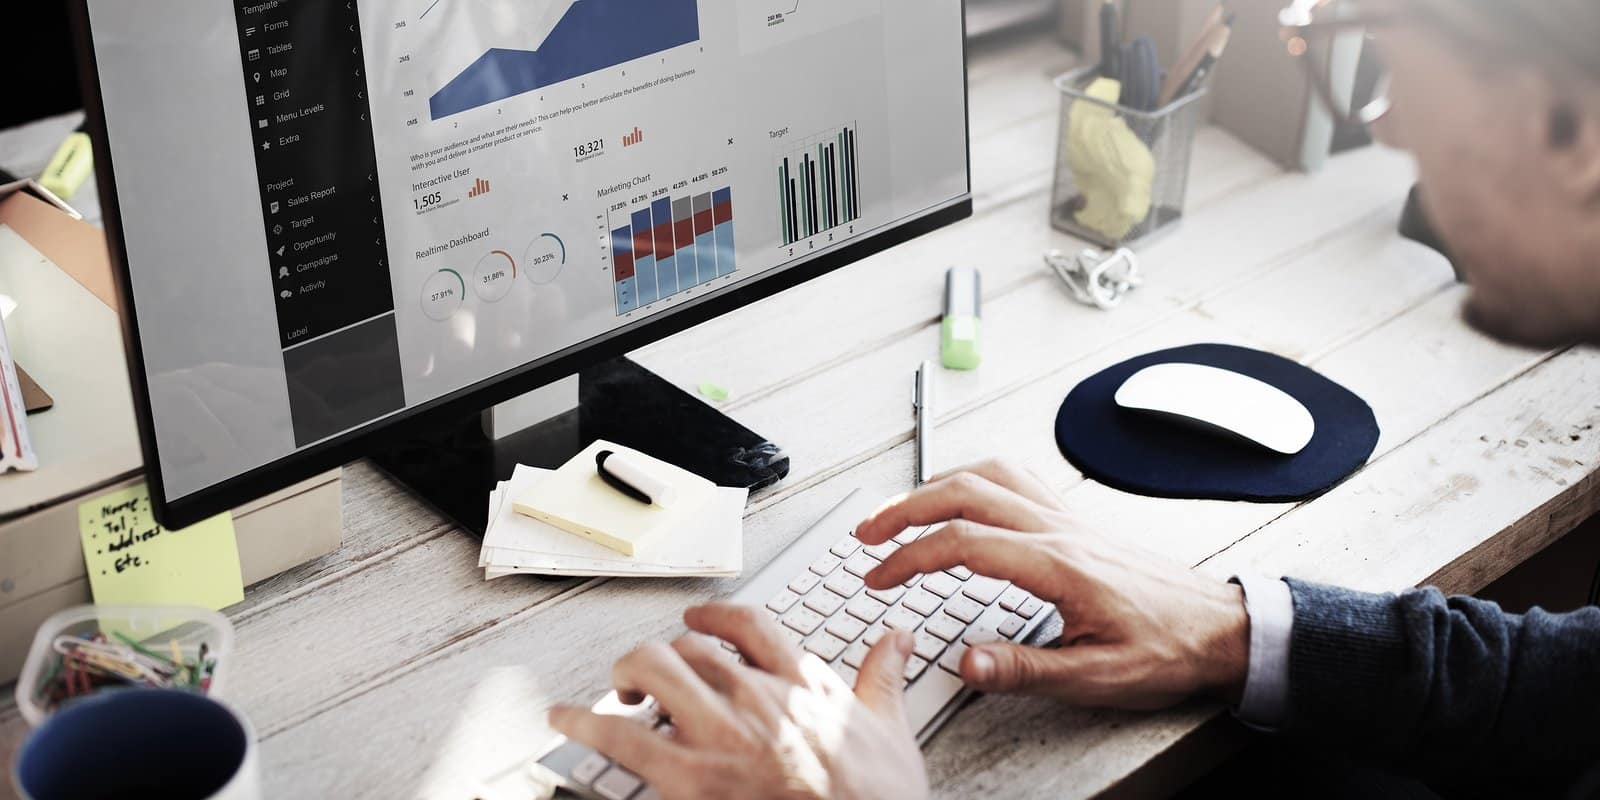 3 Ways Retention Data Can Drive Growth and Profitability